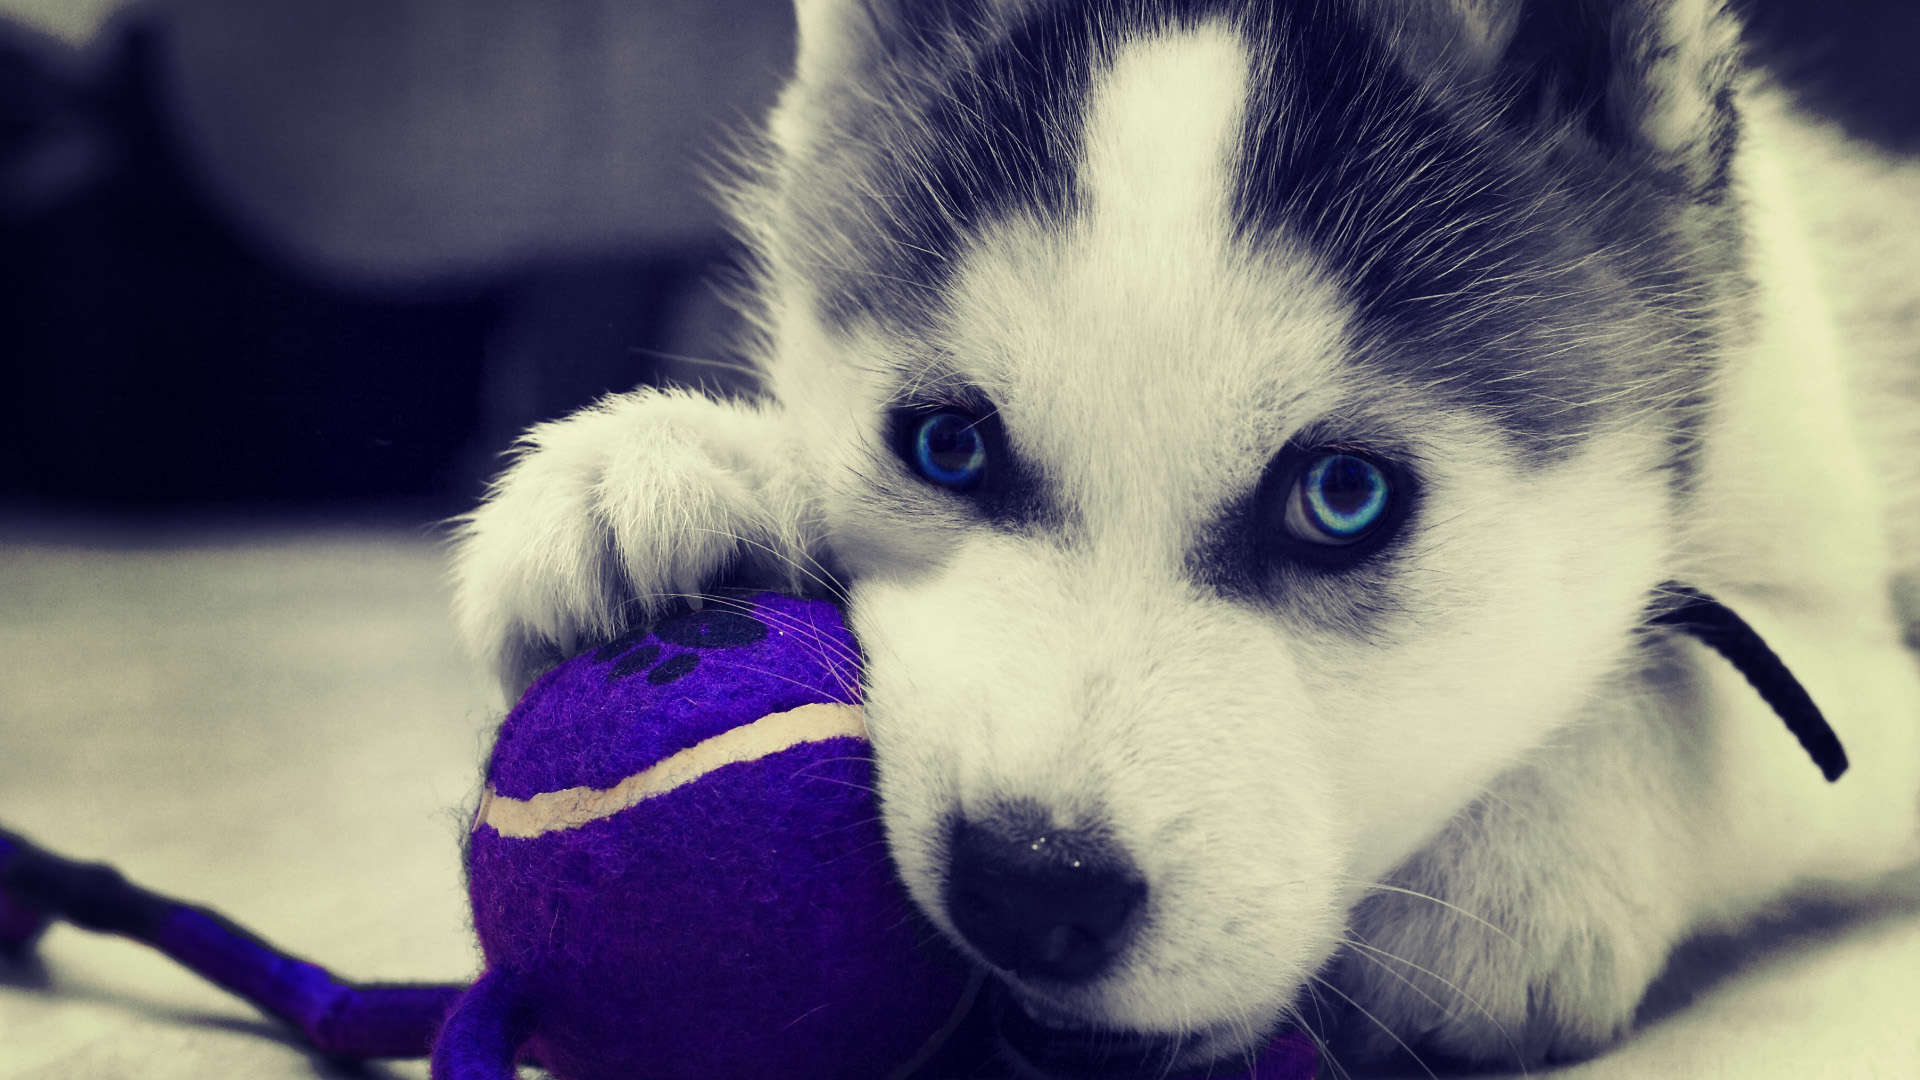 Sightly Different Colored S Siberian Husky Puppies Wallpapers Hd Wallpapers Inn Siberian Husky Wallpapers Wallpaper Cave Husky Puppies Gif Husky Puppies bark post Cute Husky Puppies